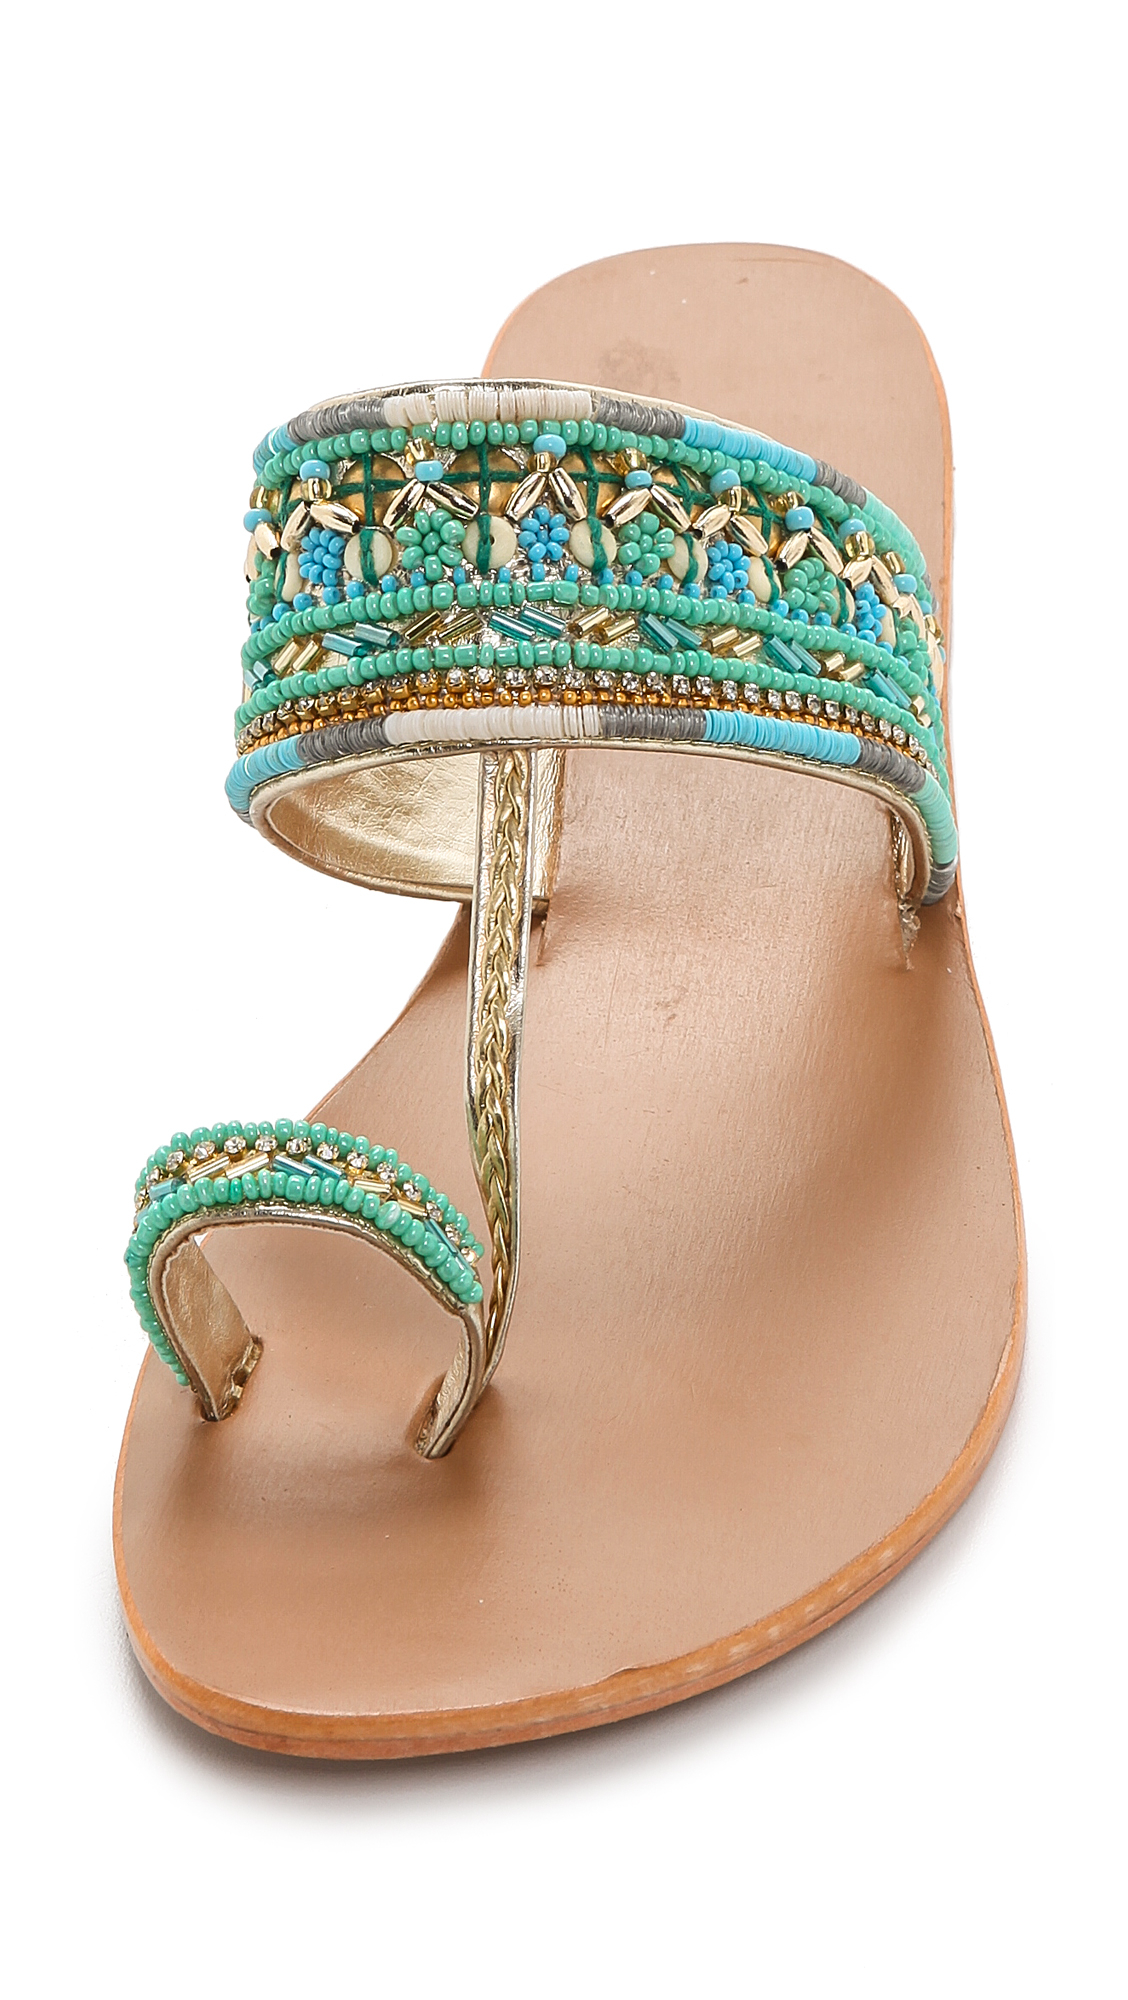 Beaded Indian Shoes Uk